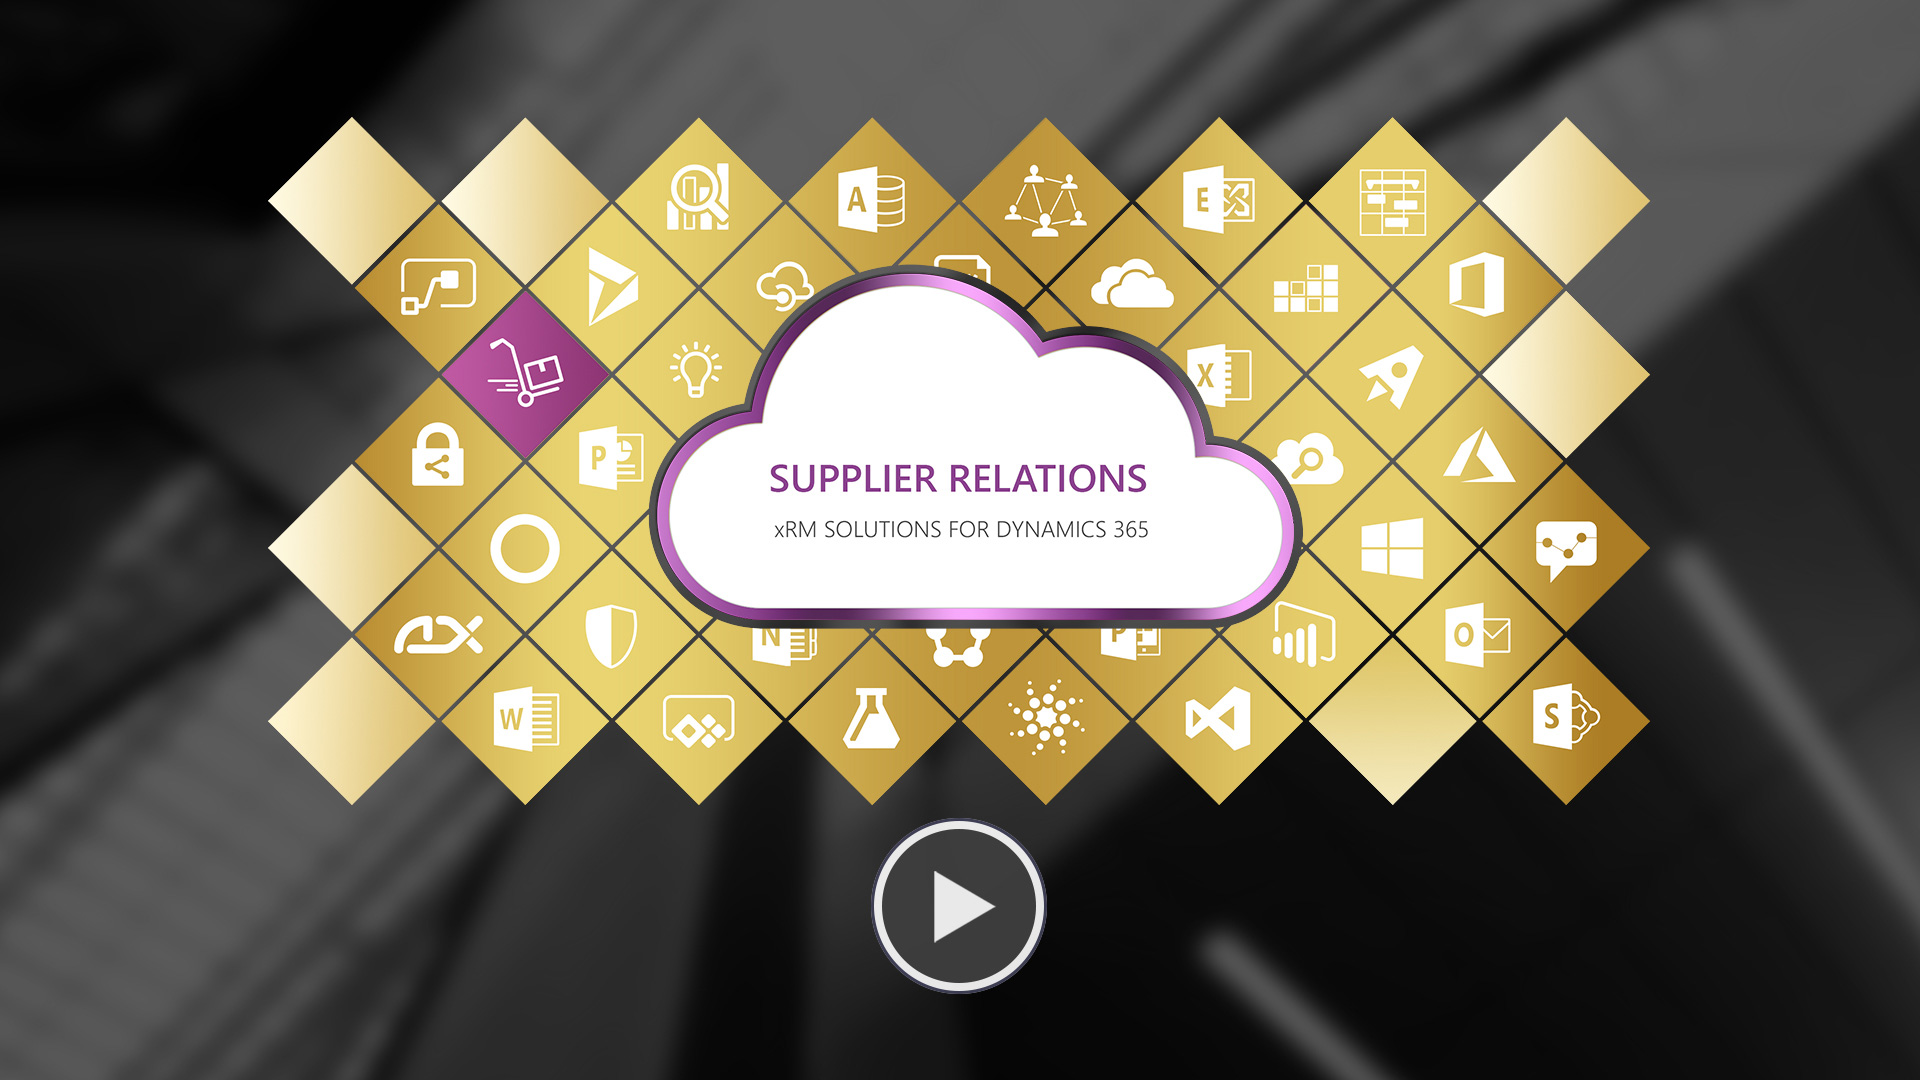 Supplier Relations